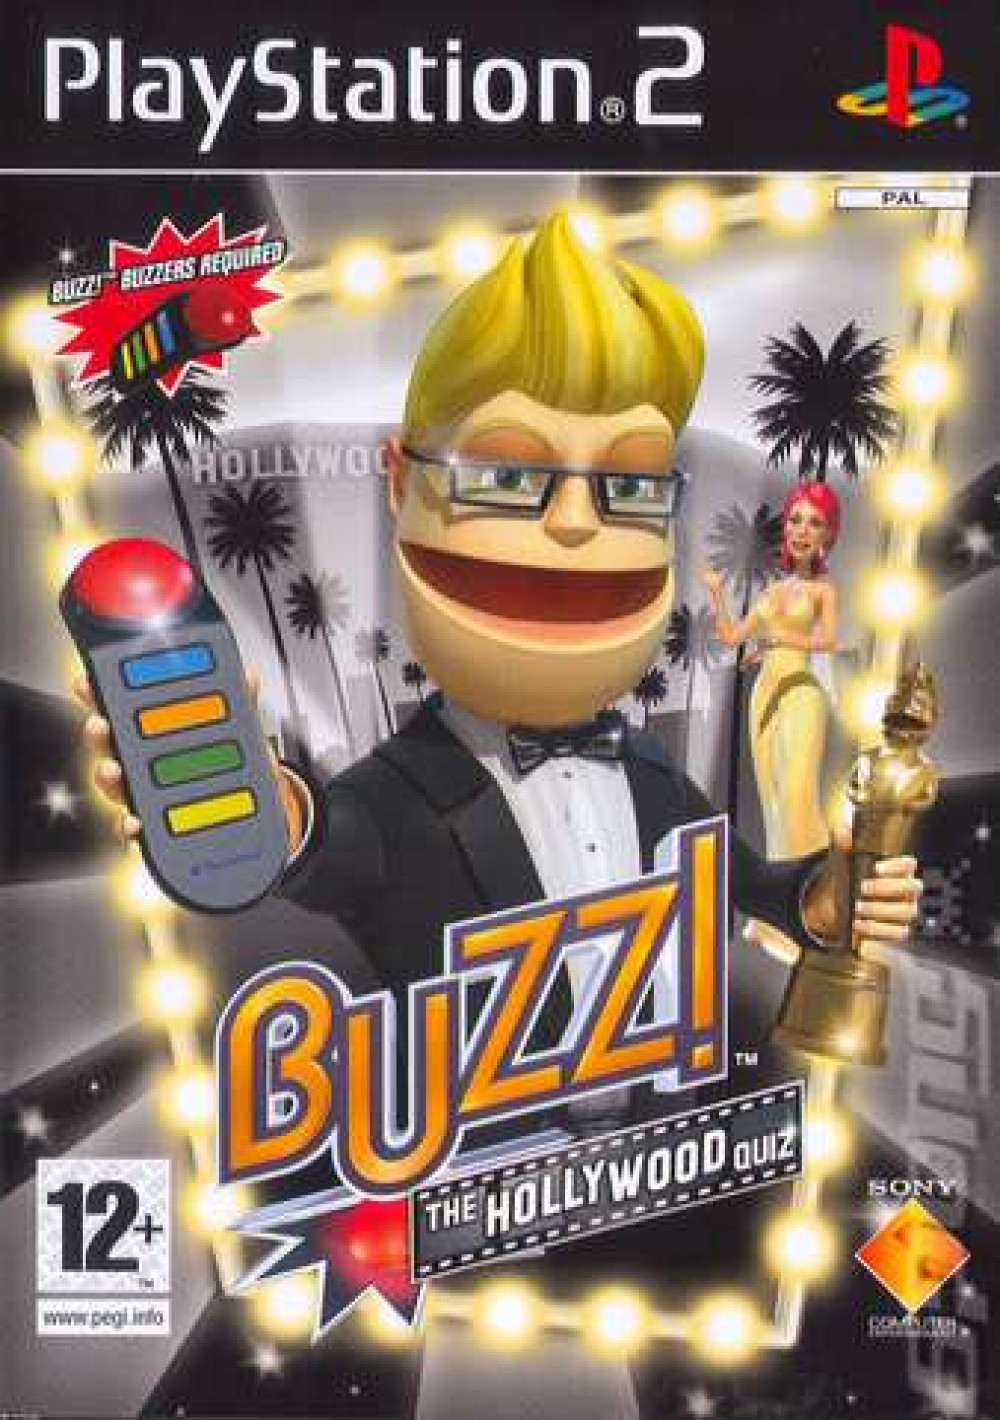 PS2 BUZZ THE HOLLYWOOD QUIZ